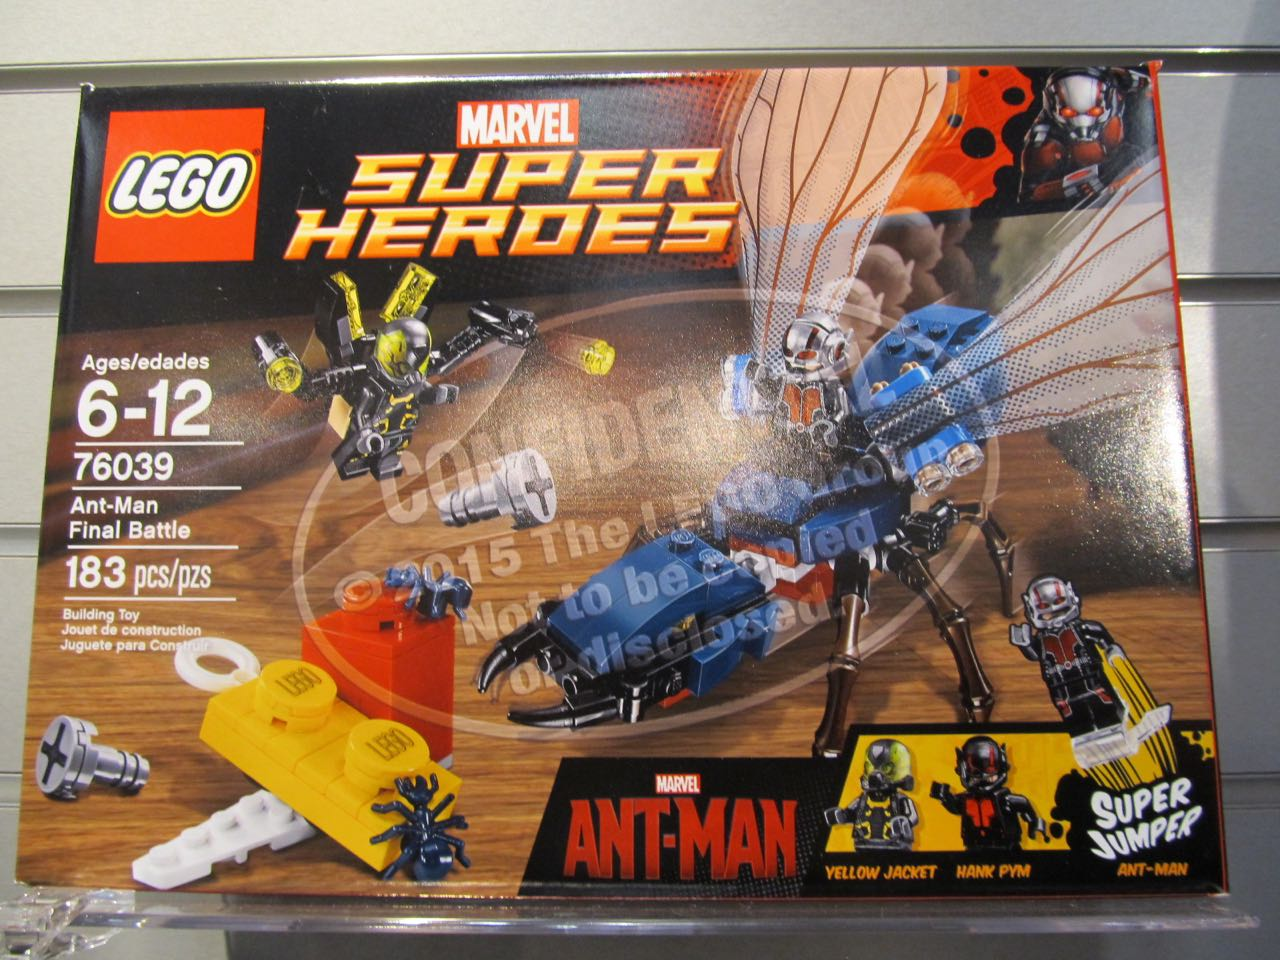 Toy Fair 2015: Ant-Man Lego Set